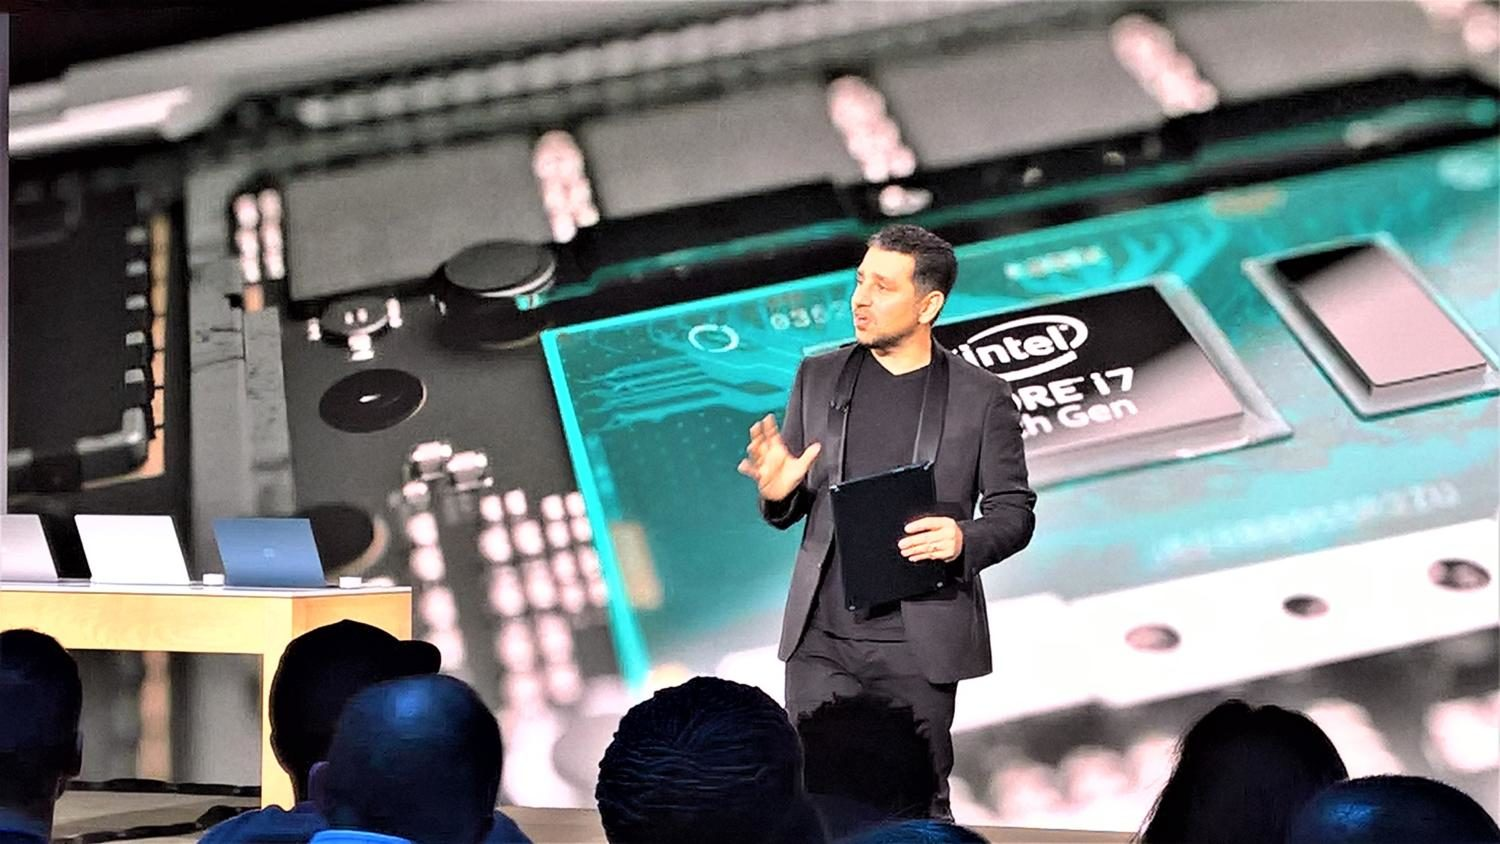 Microsoft+VP+Corporate+VP+of+Devices%2C+Panos+Panay%2C+shows+off+the+Surface+laptop+to+members+of+the+press.